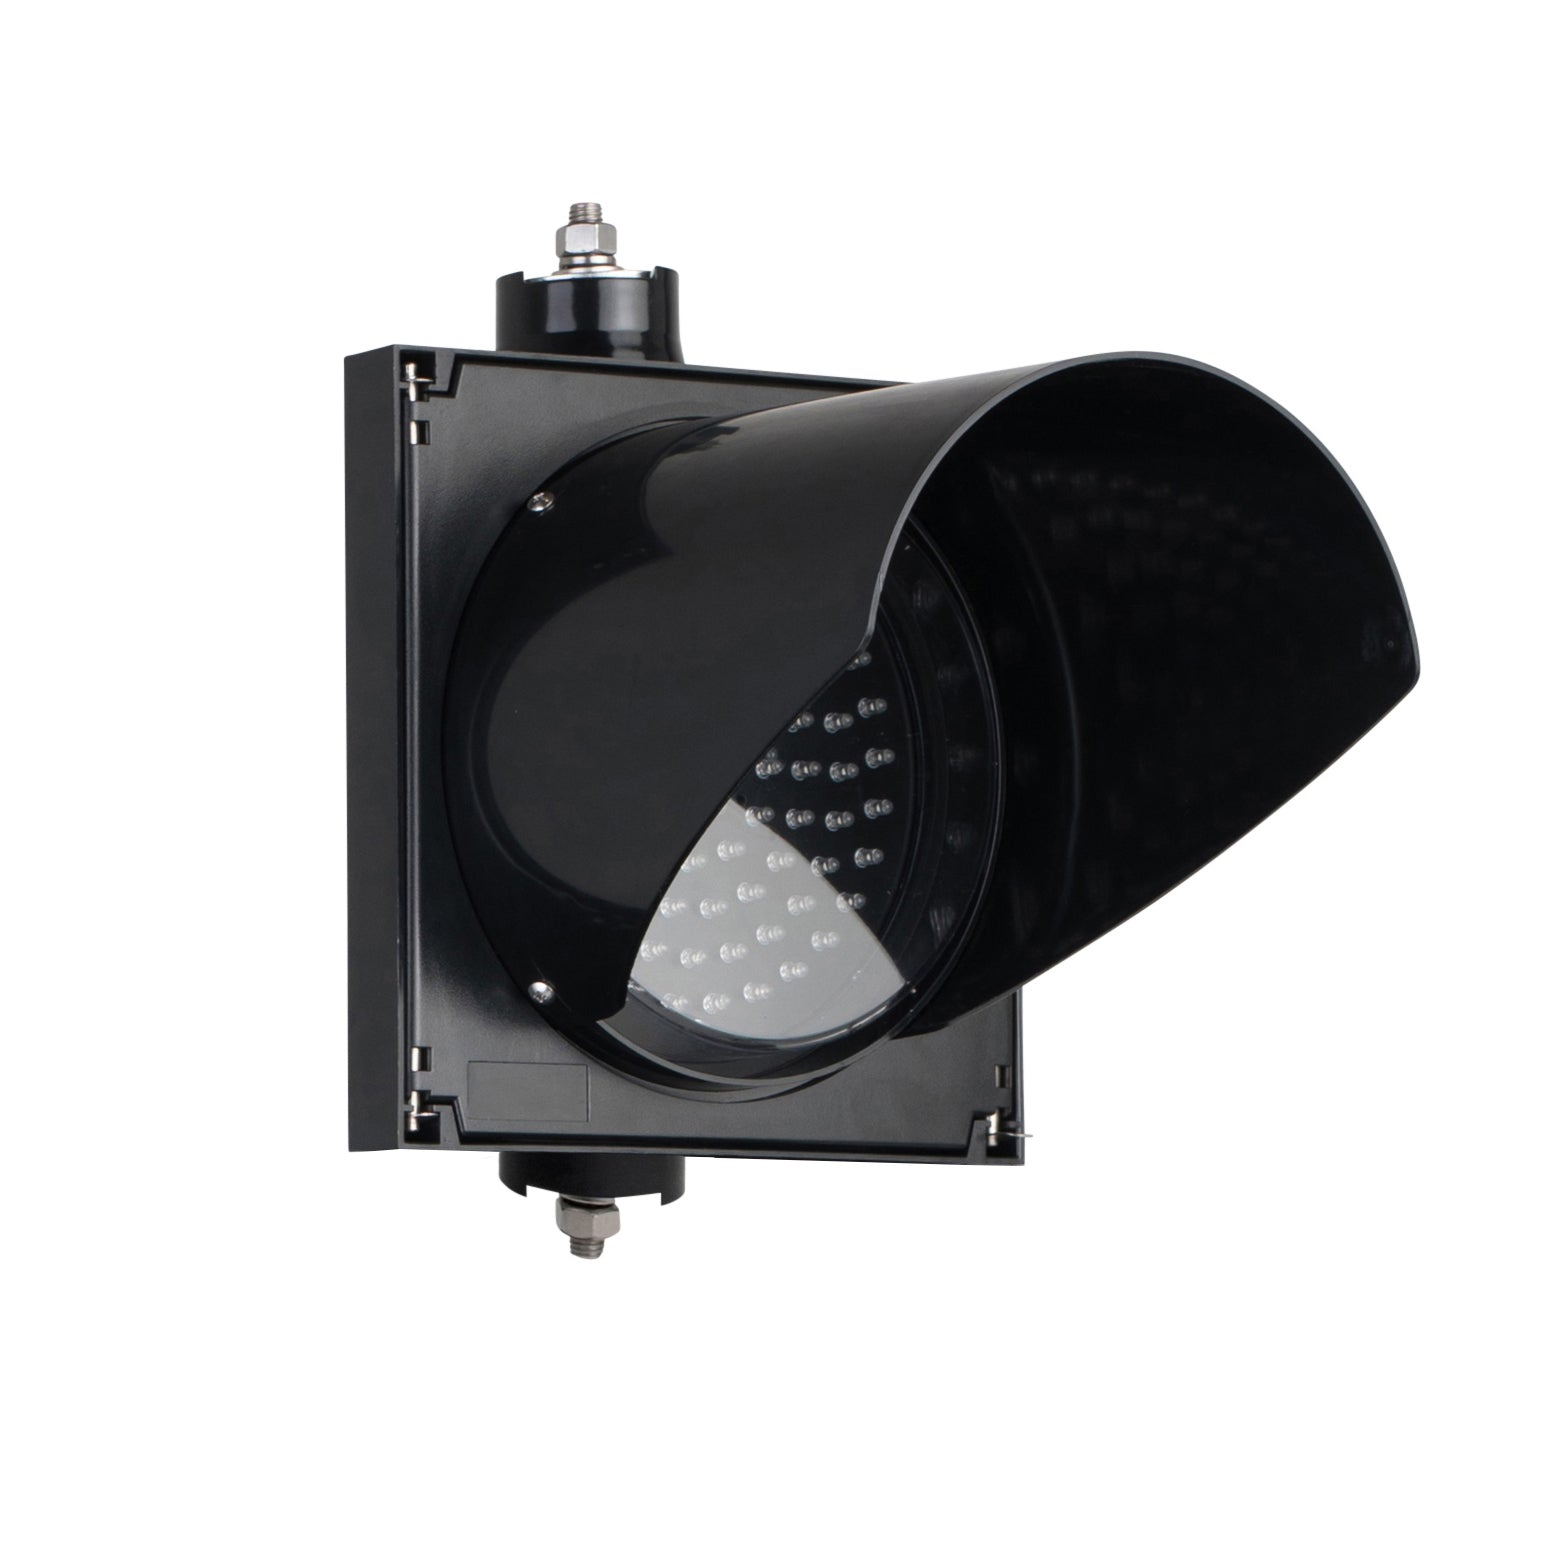 BNR BNR Single Aspect 200mm Lane Control LED Traffic Light IP55 12-24VDC or 85-265VAC - Red X and Green Arrow Combination - BNR Industrial